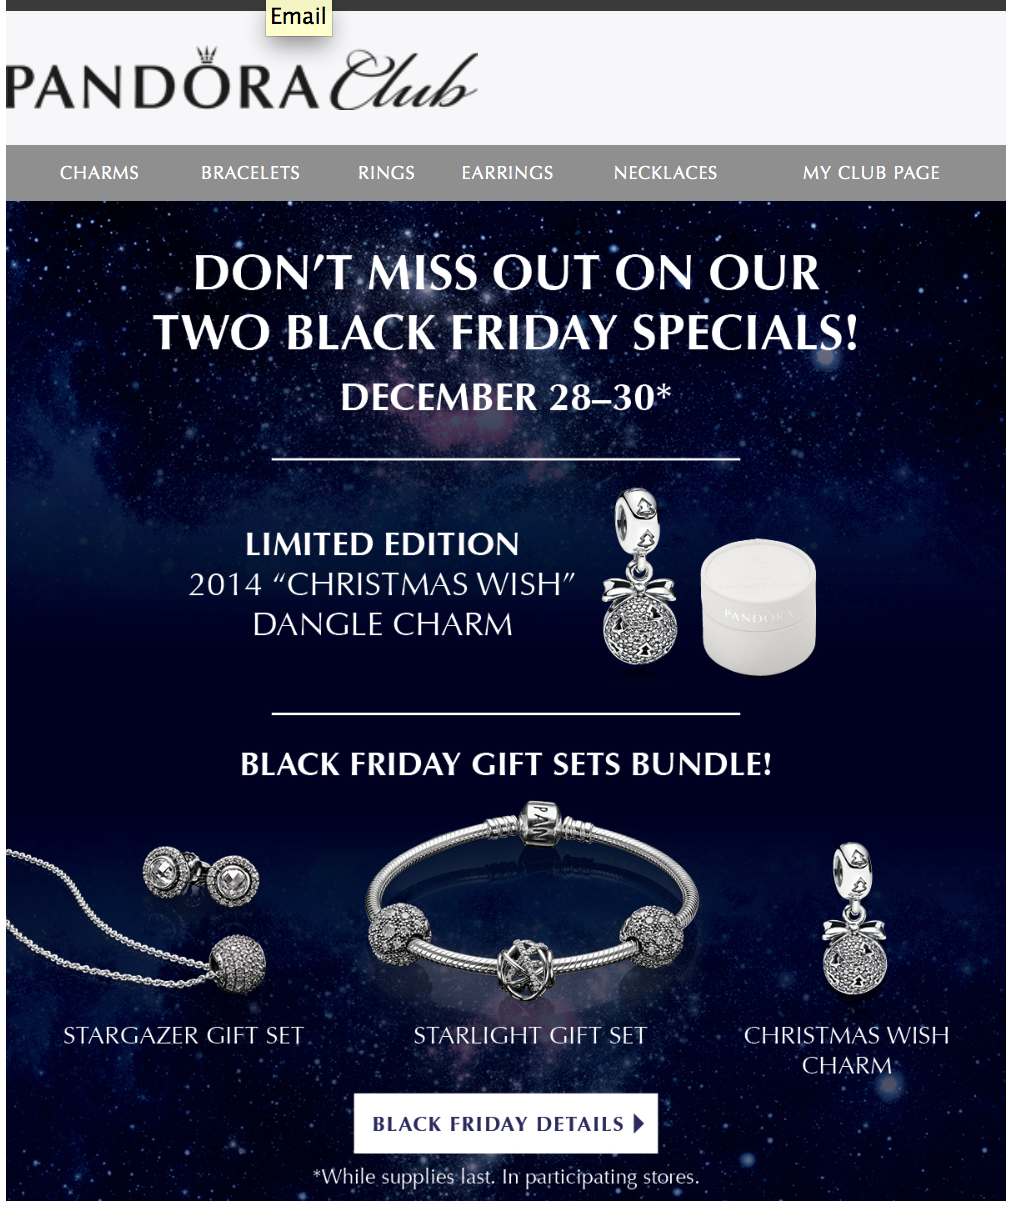 pandora black friday 2018 sale holiday charms blacker